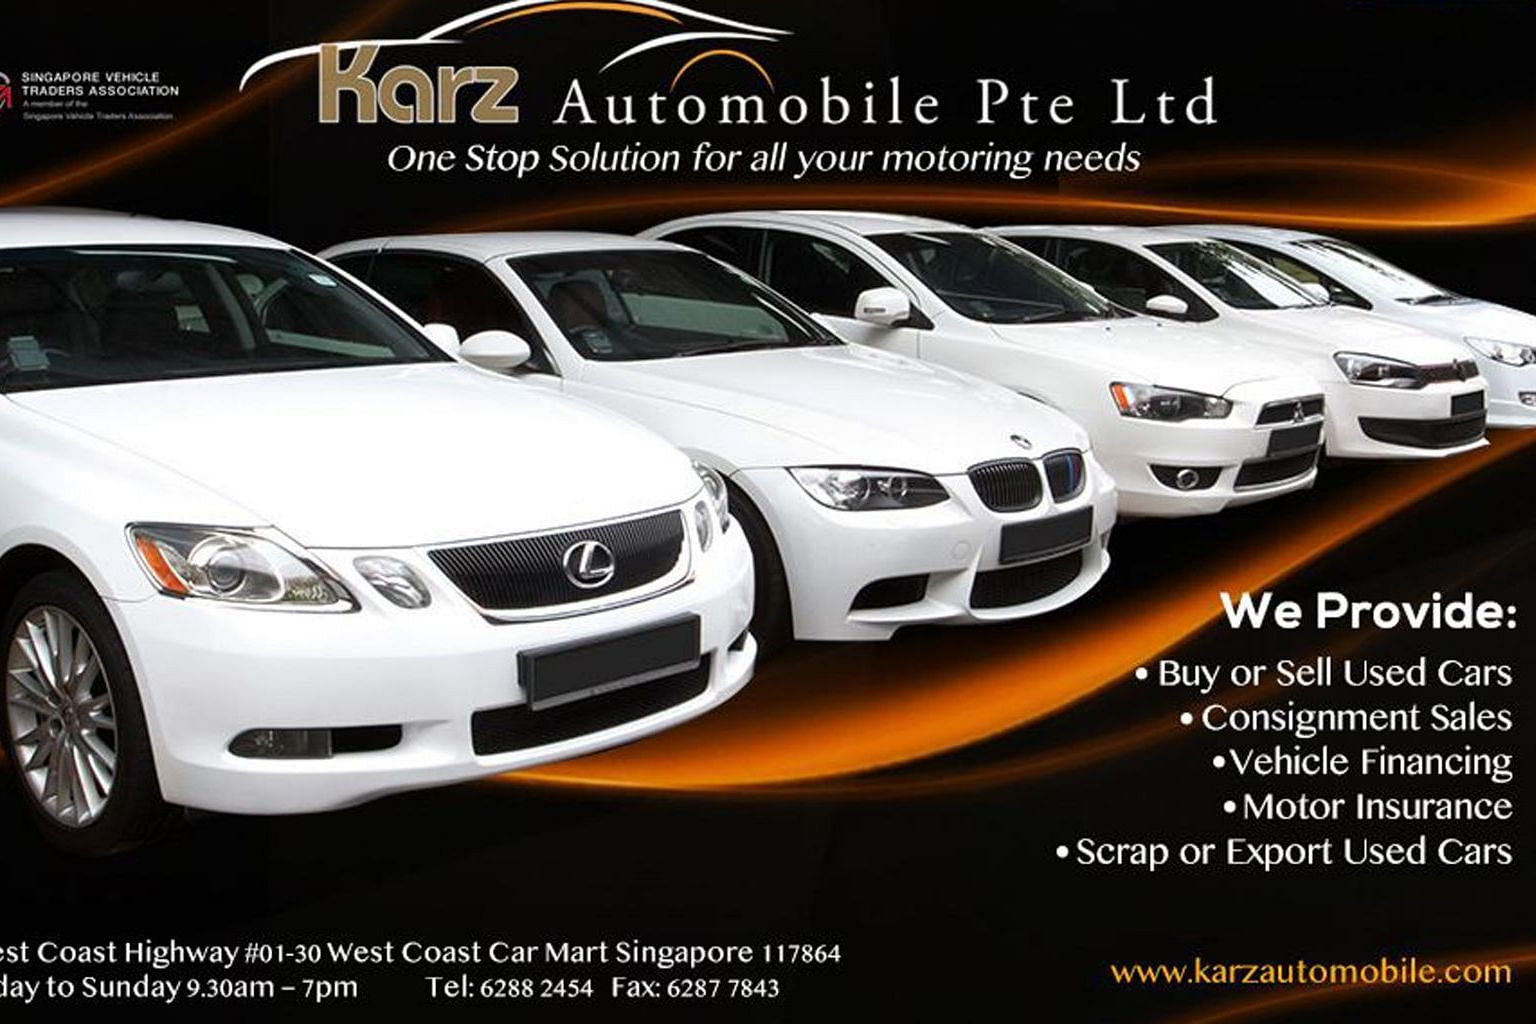 Karz Automobile and Universe Motoring are the latest in a string of car dealers to shut without notice. From December last year to September this year, at least seven dealers have closed, with customers losing